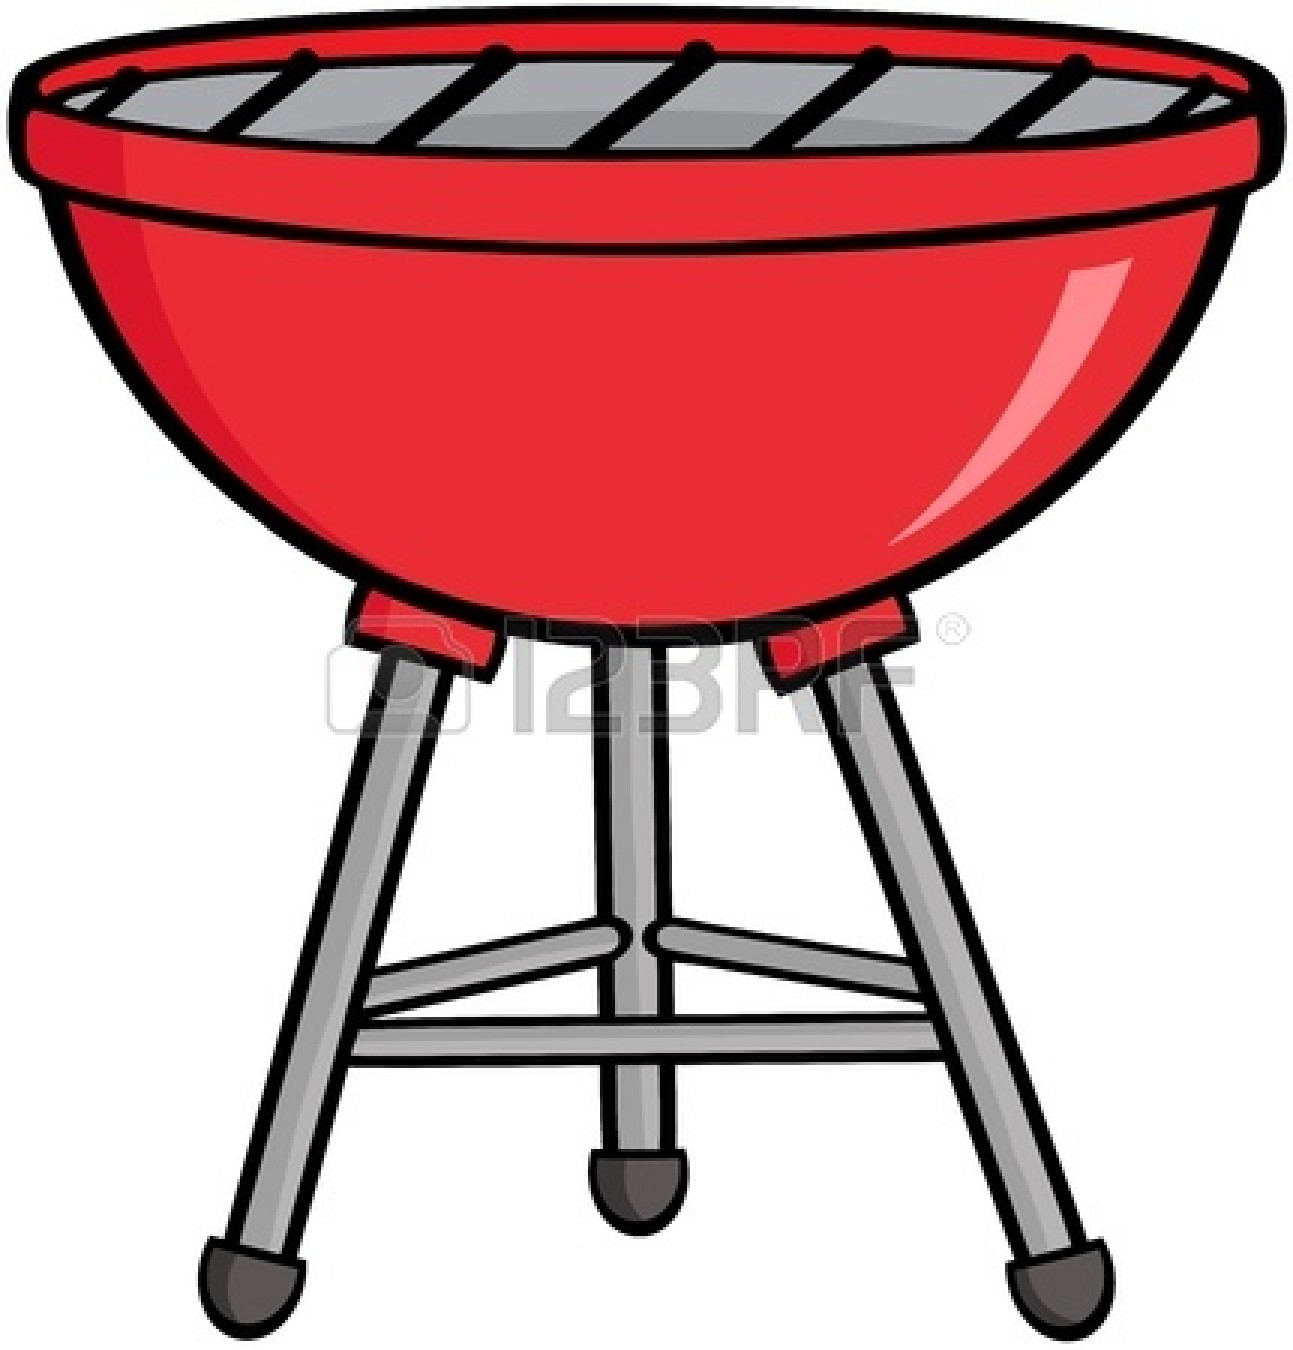 grill clipartlook. Bbq clipart barbecue